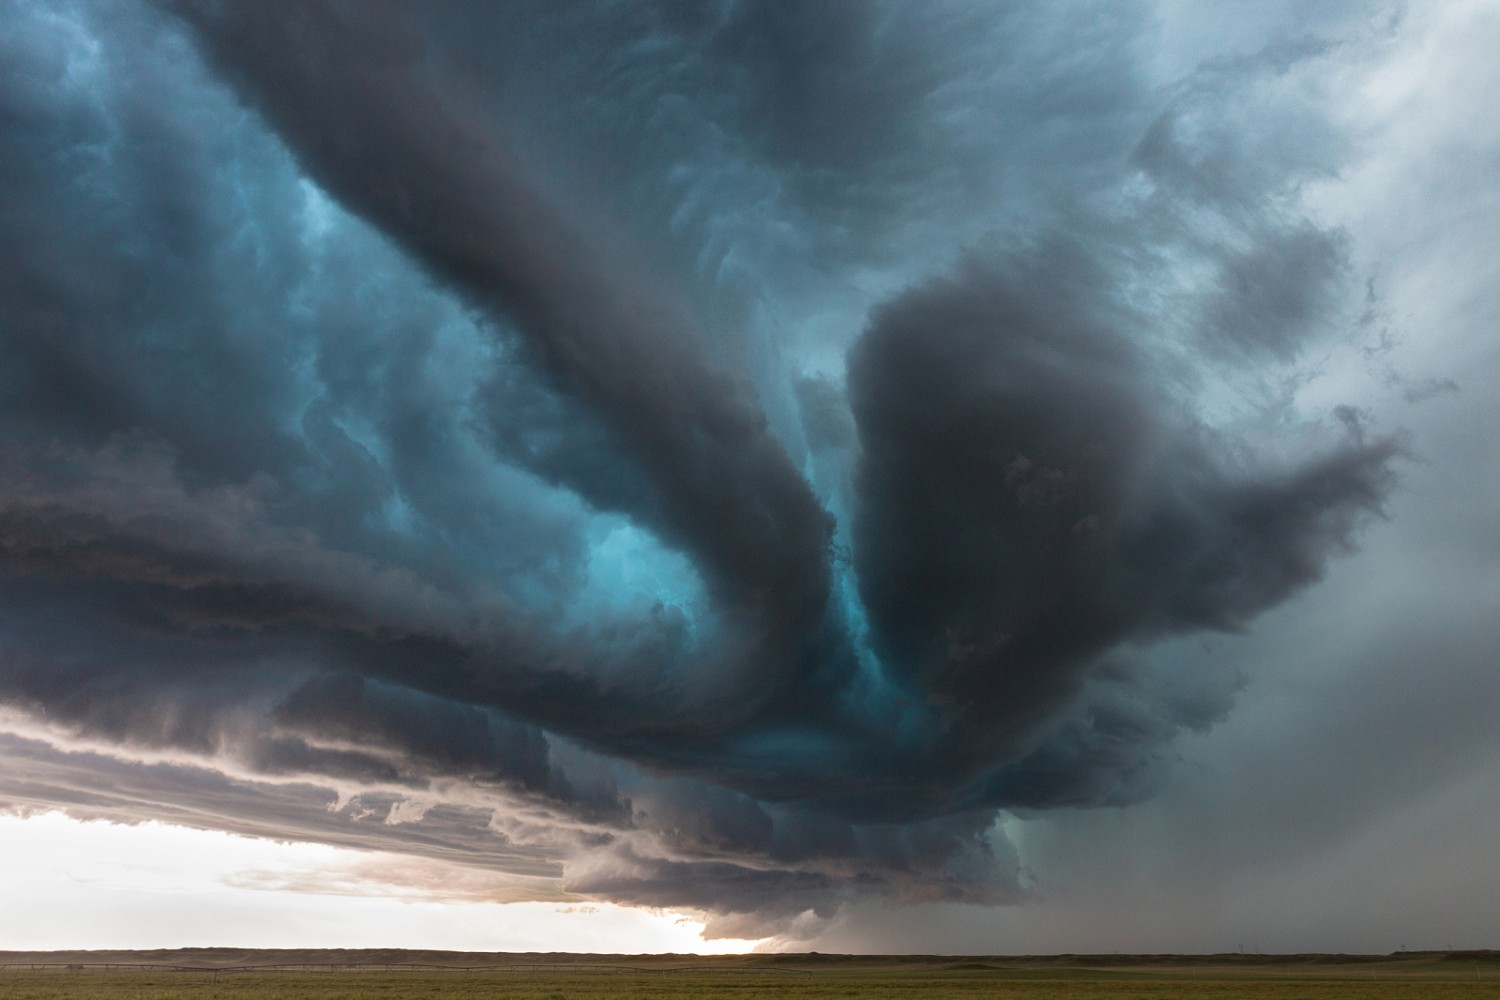 Why is This Storm Glowing Blue? Hint: It's Not Photoshop